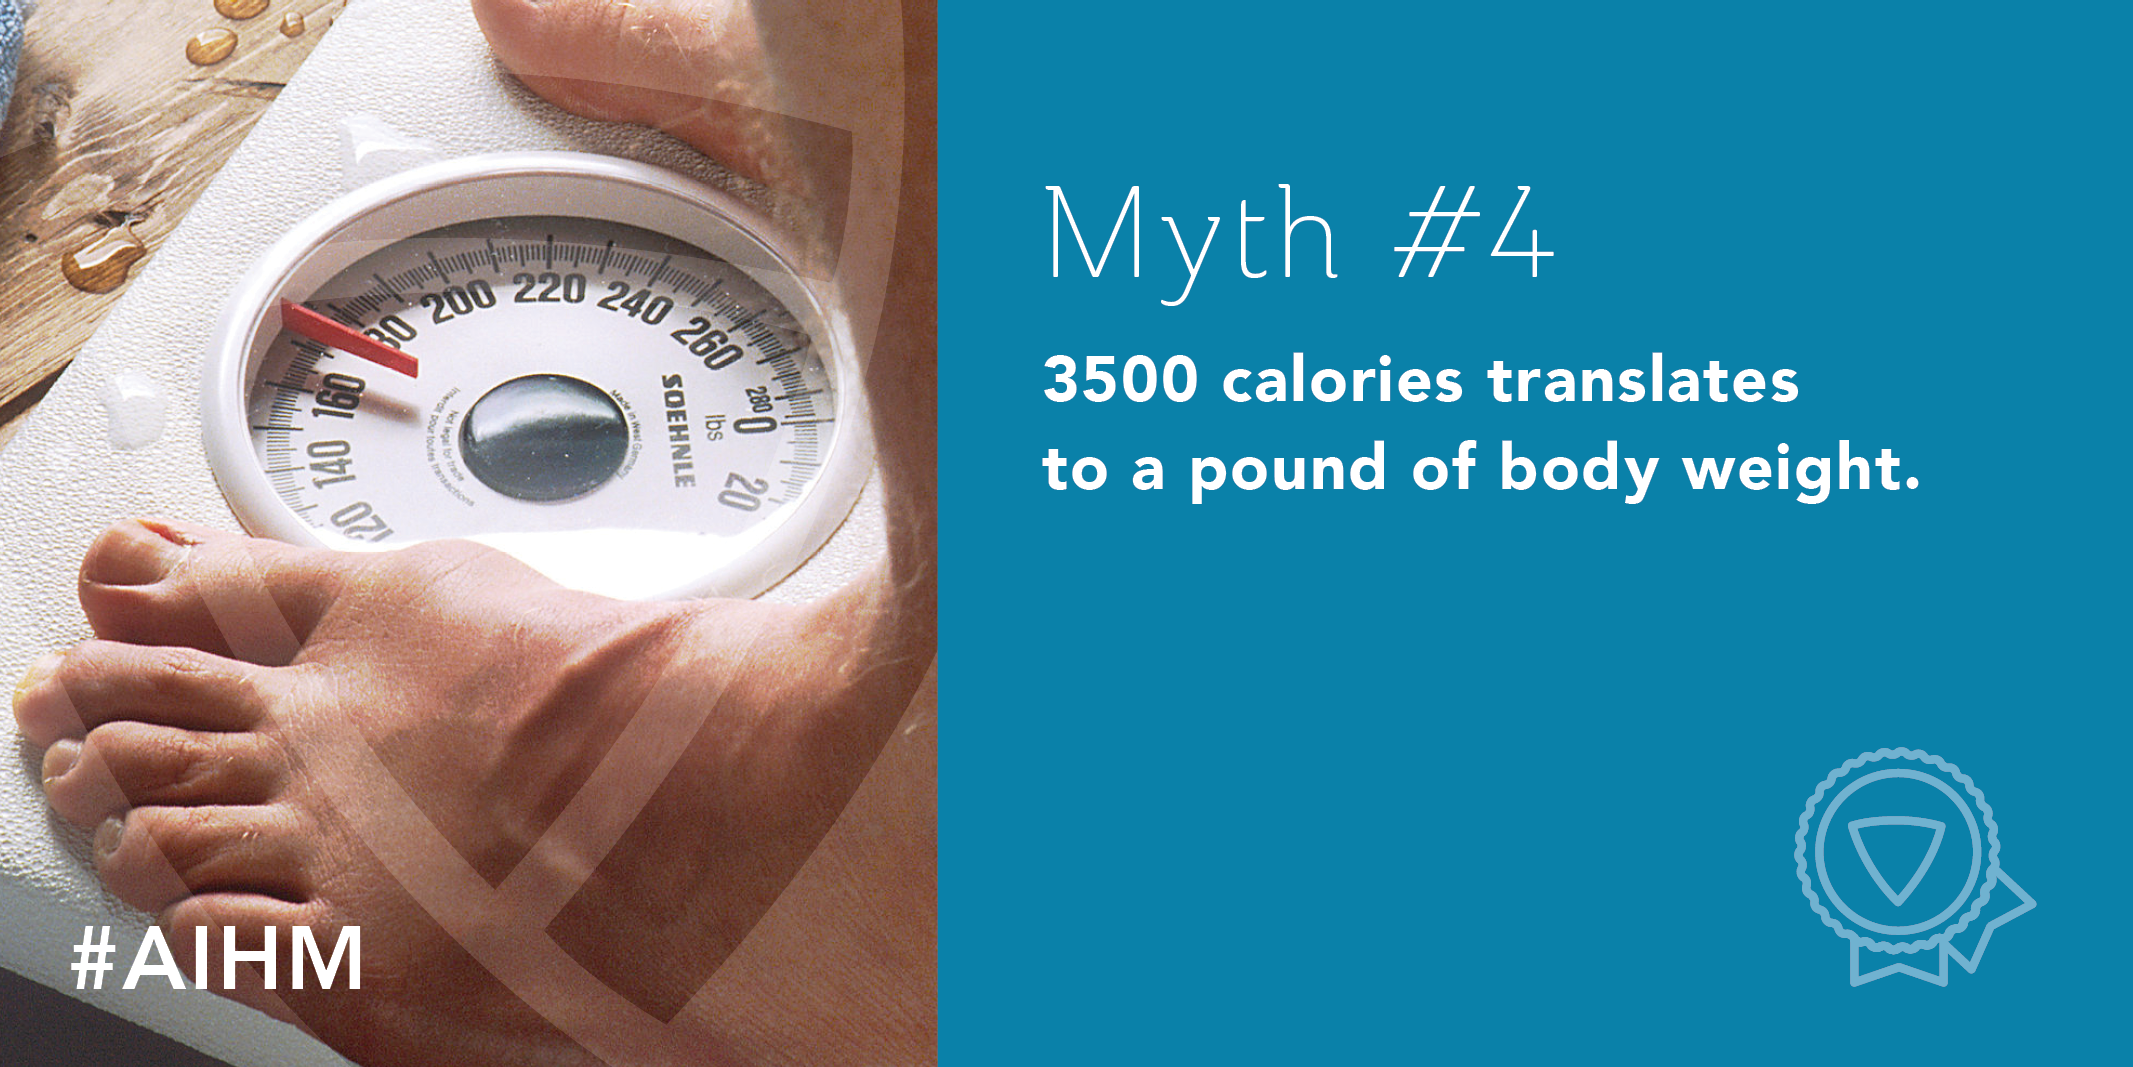 Myth #4: 3500 calories translates to a pound of body weight.